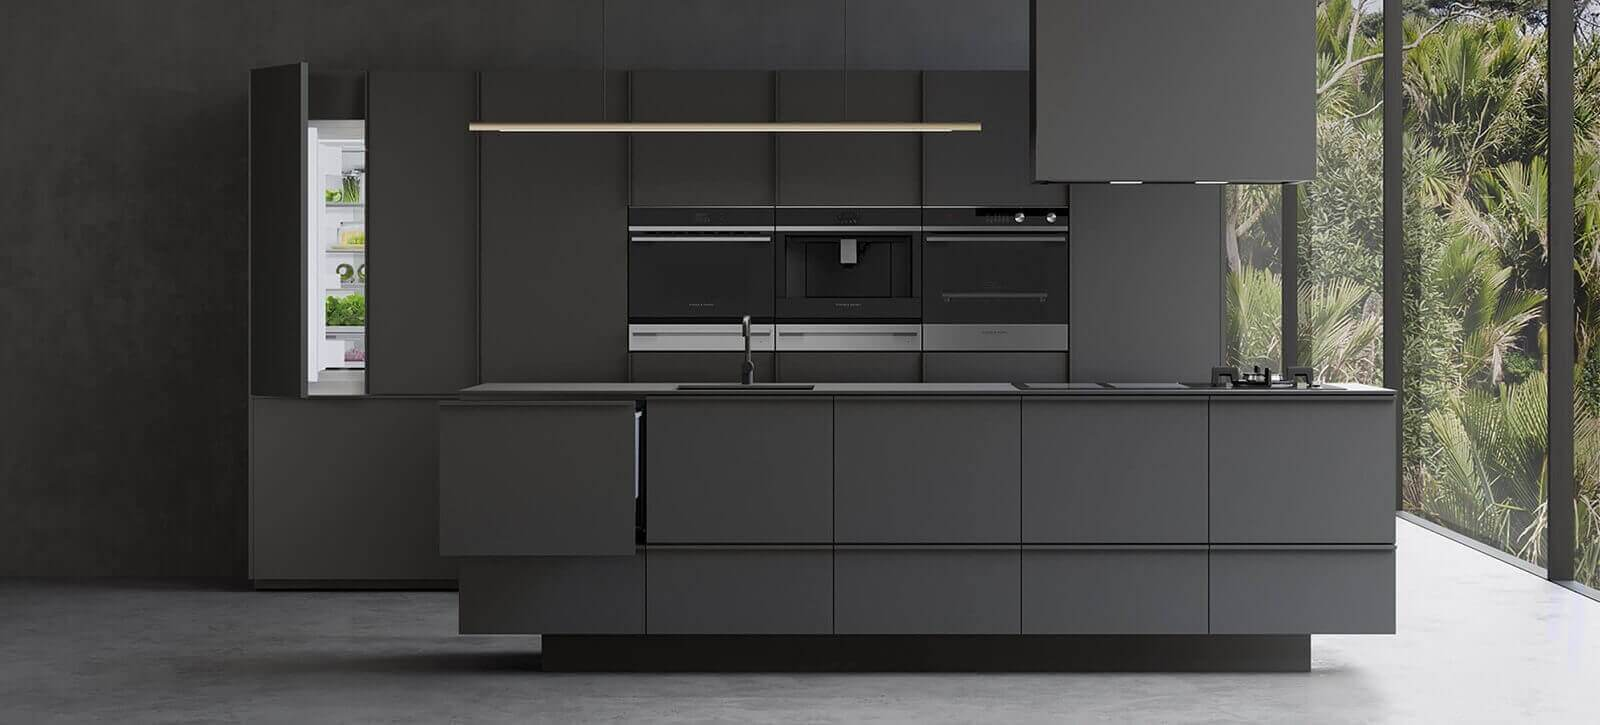 Fisher & Paykel - $2,000 Cash Back